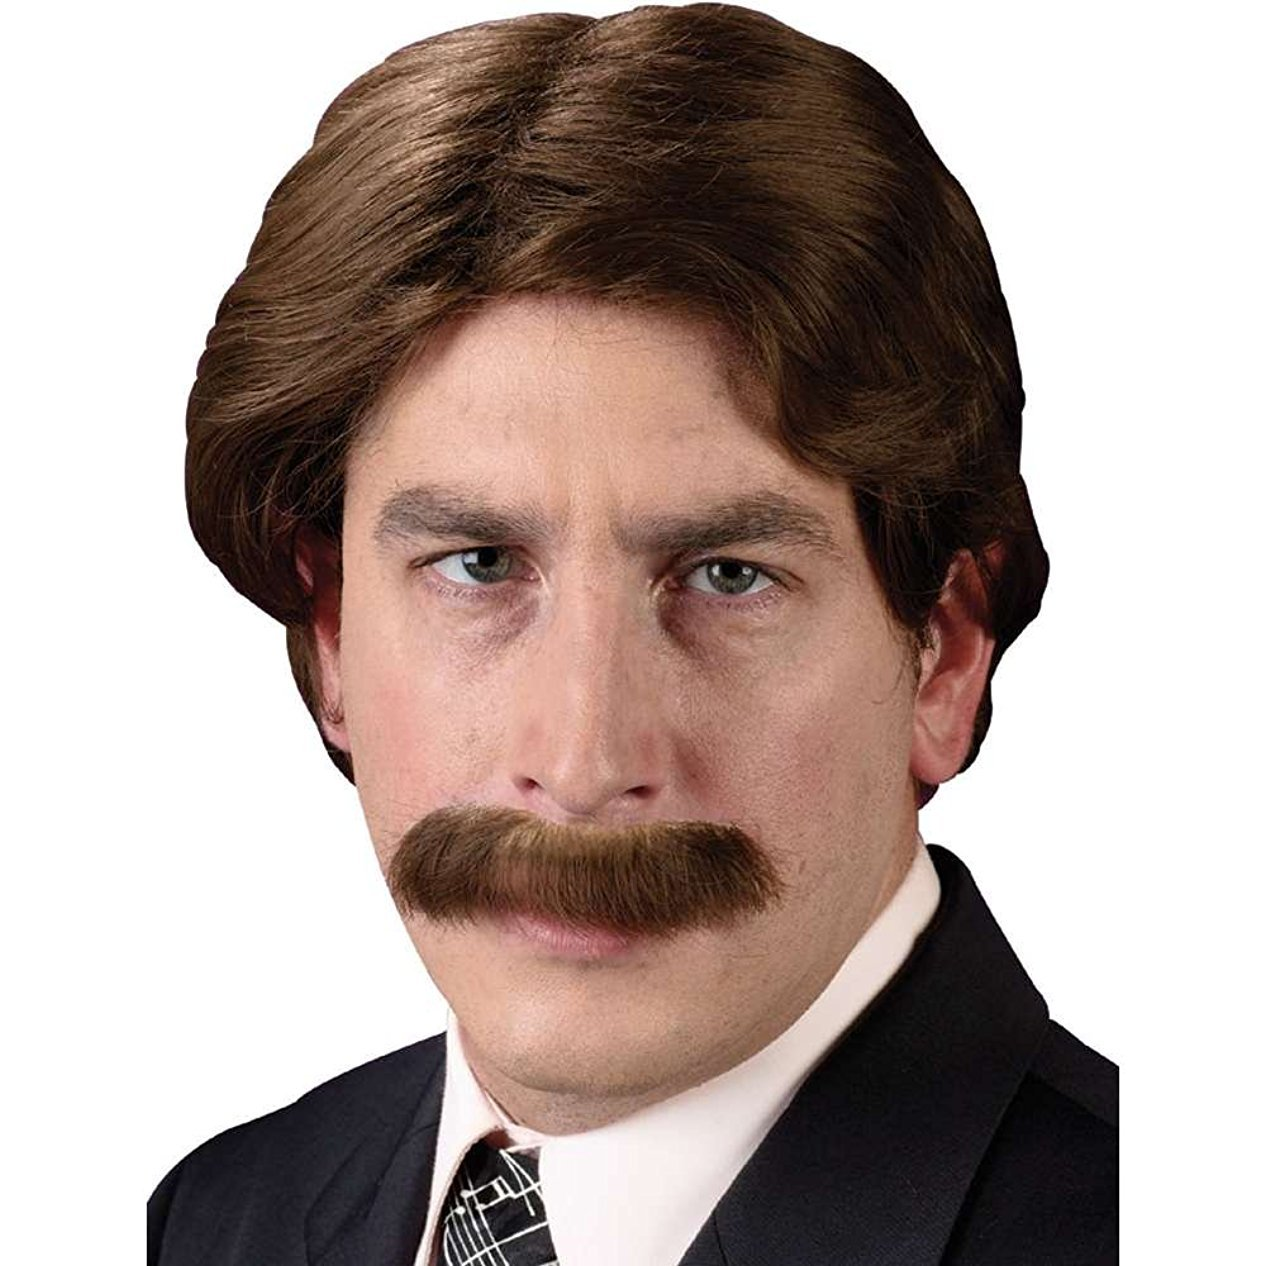 70's Wig And Moustache Set - Adult Std. Brown Standard Fun World 8198